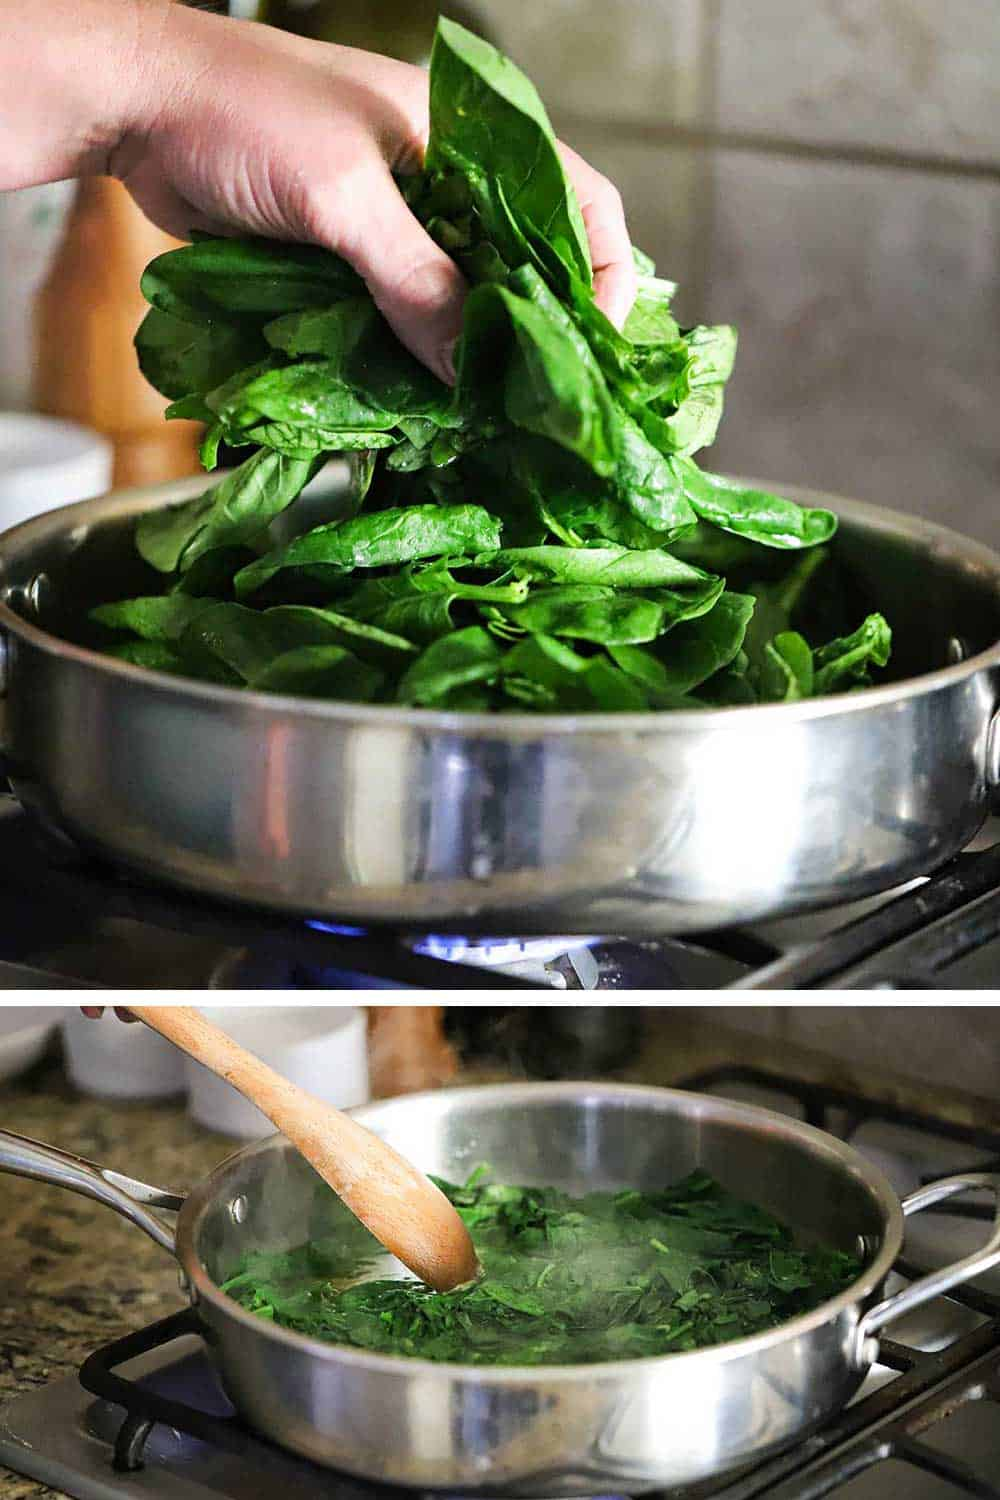 A hand dropping fresh spinach leaves into a skillet an then those leaves cooked down after being blanched.